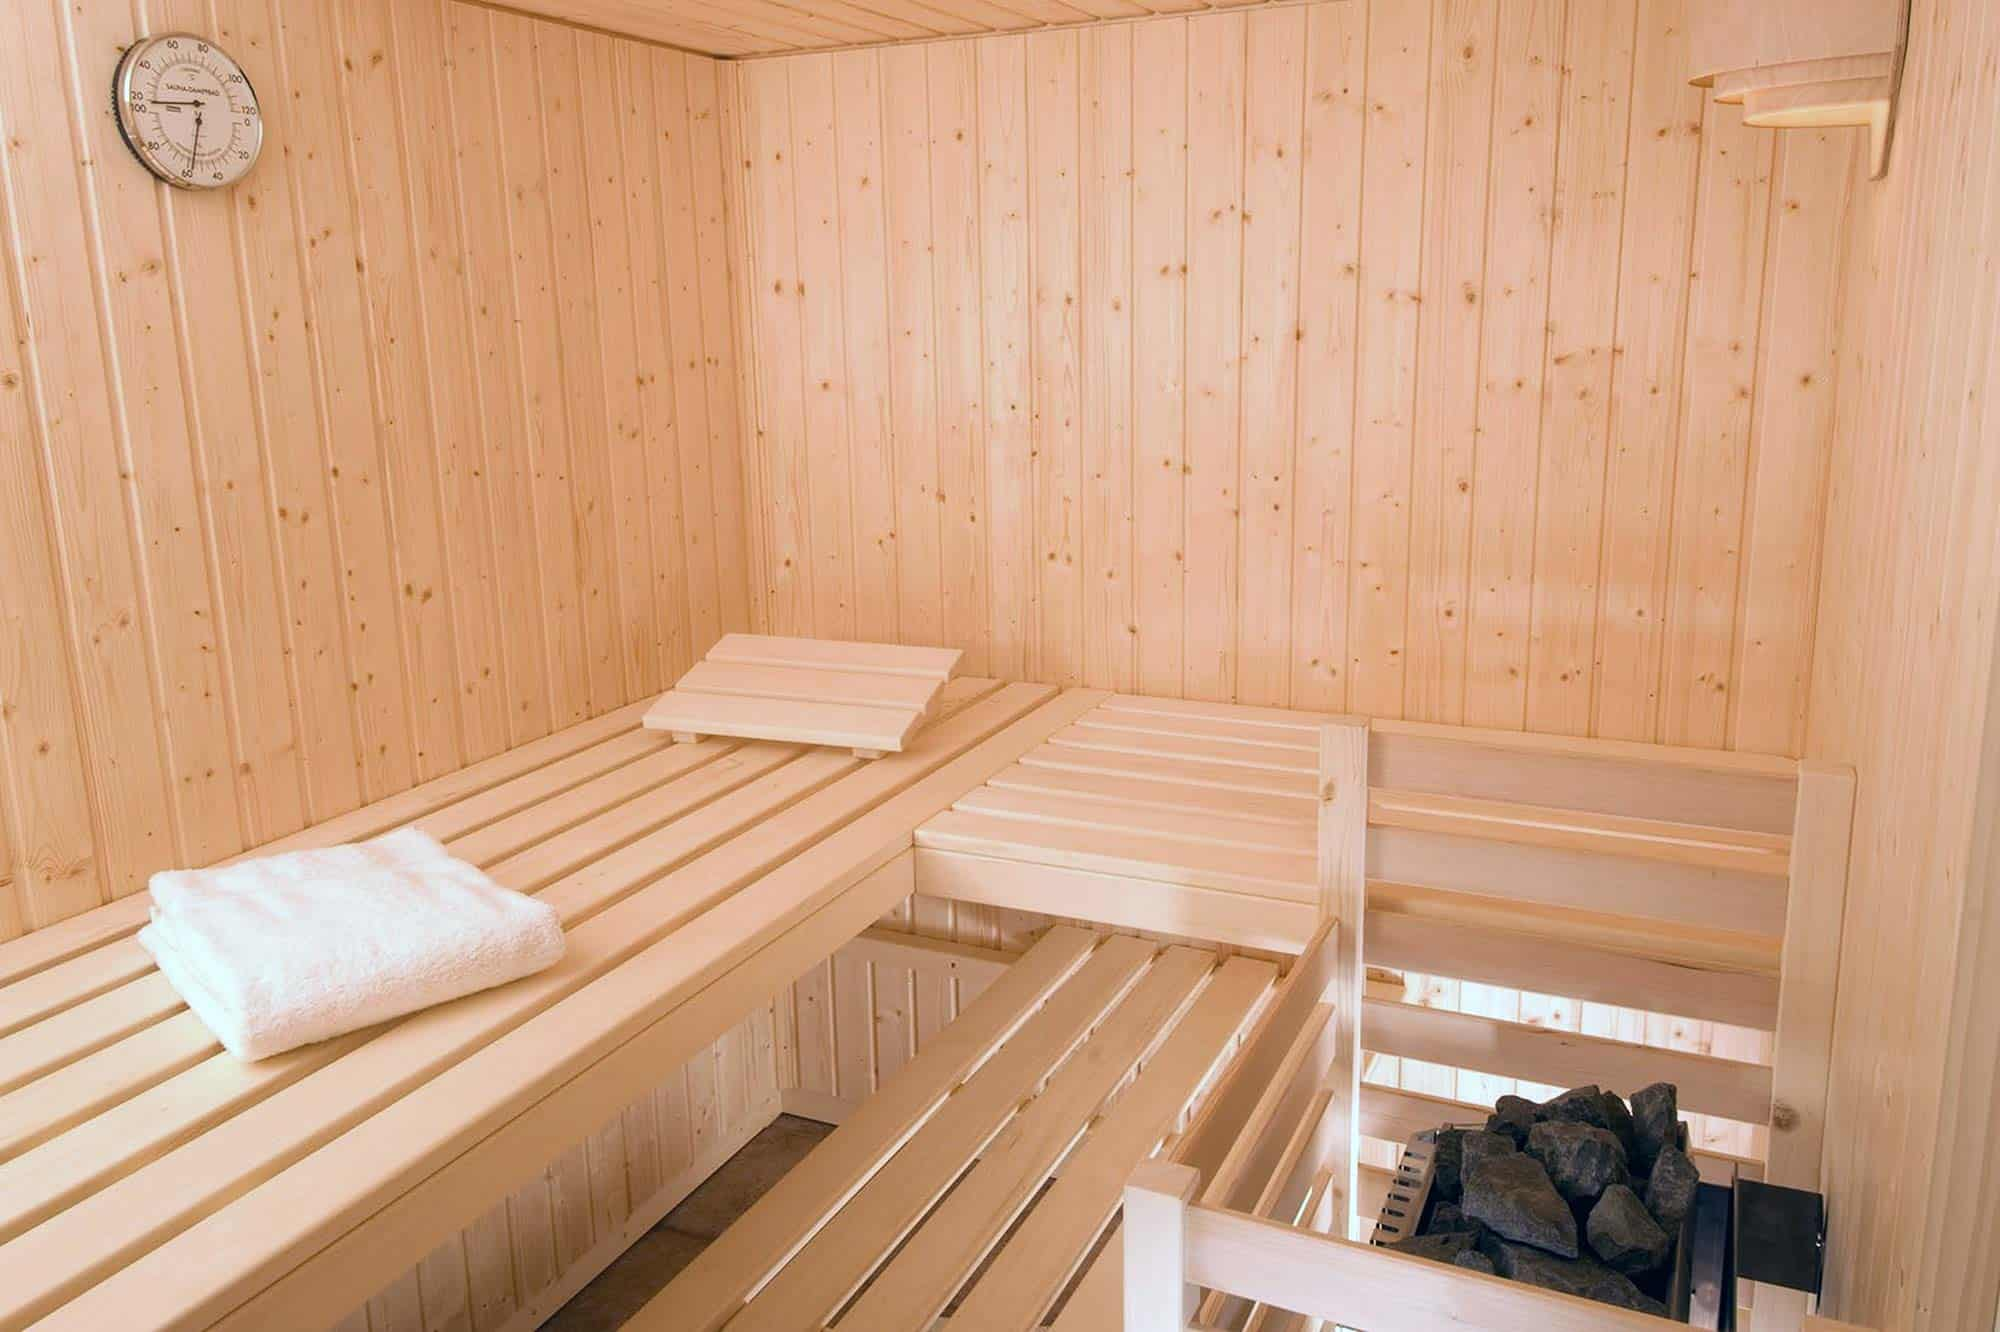 sauna und kampfsport eine wirkungsvolle kombination f r. Black Bedroom Furniture Sets. Home Design Ideas